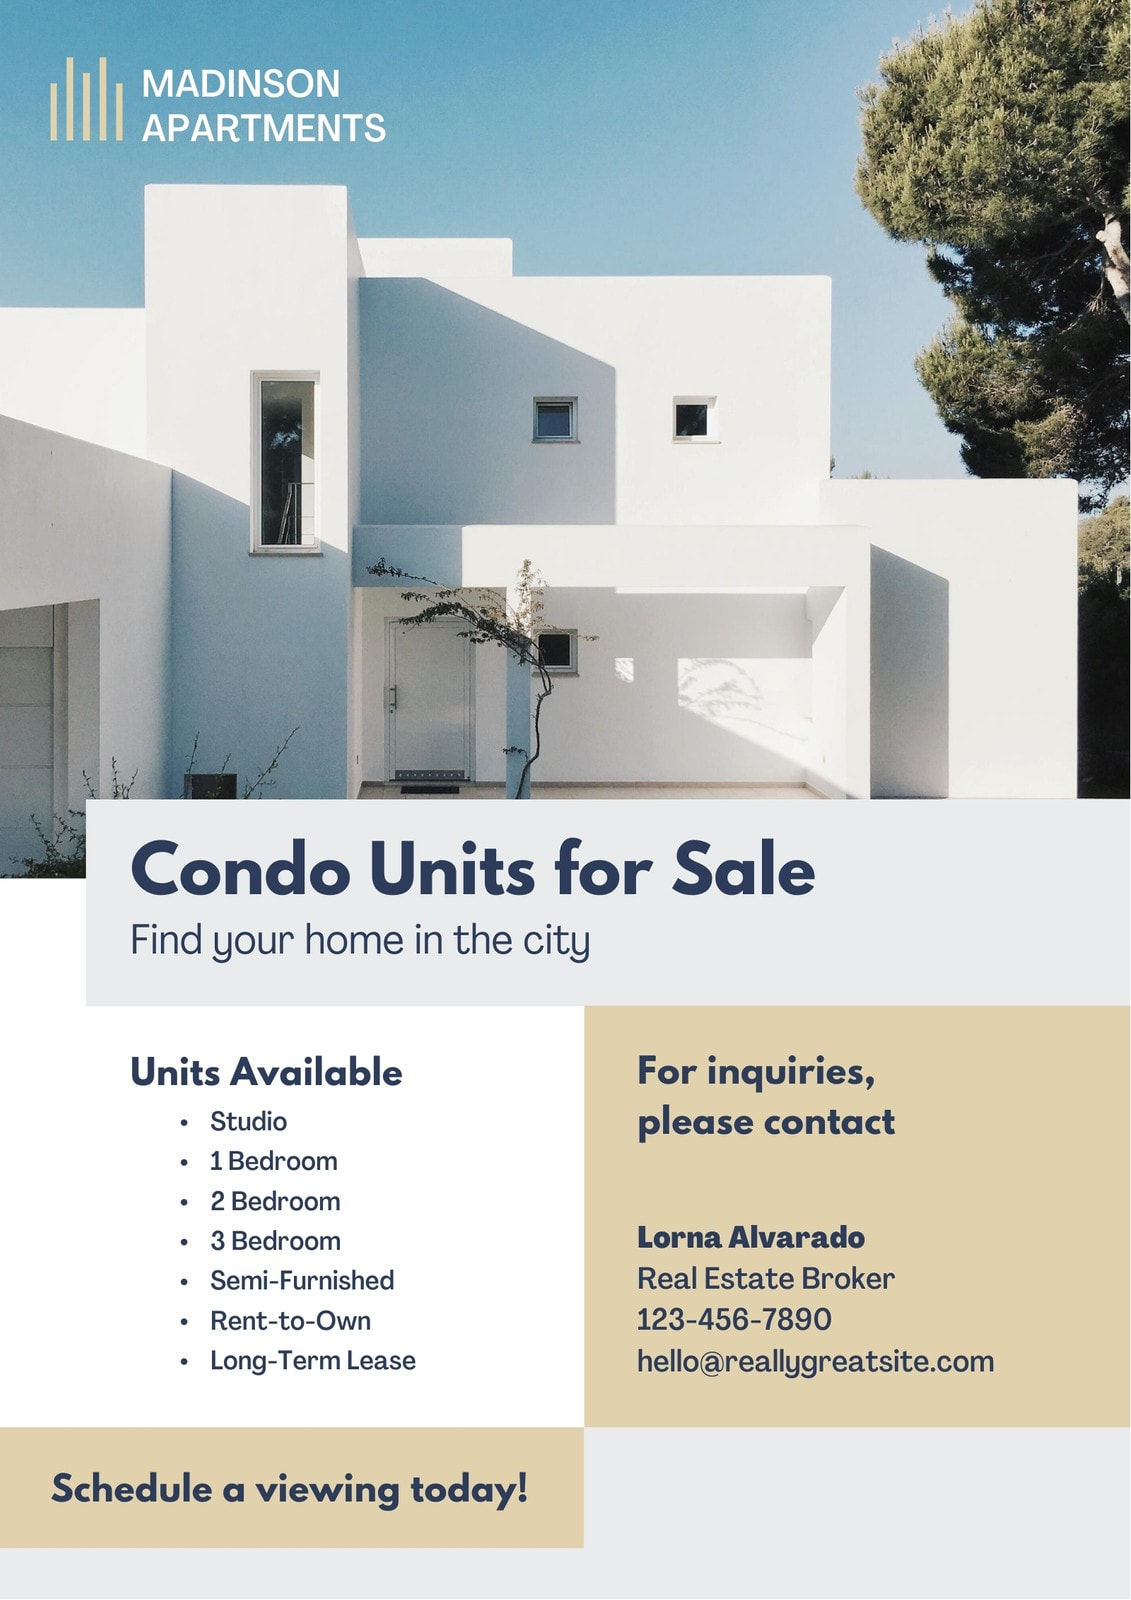 Blue and Tan Real Estate Business Flyer